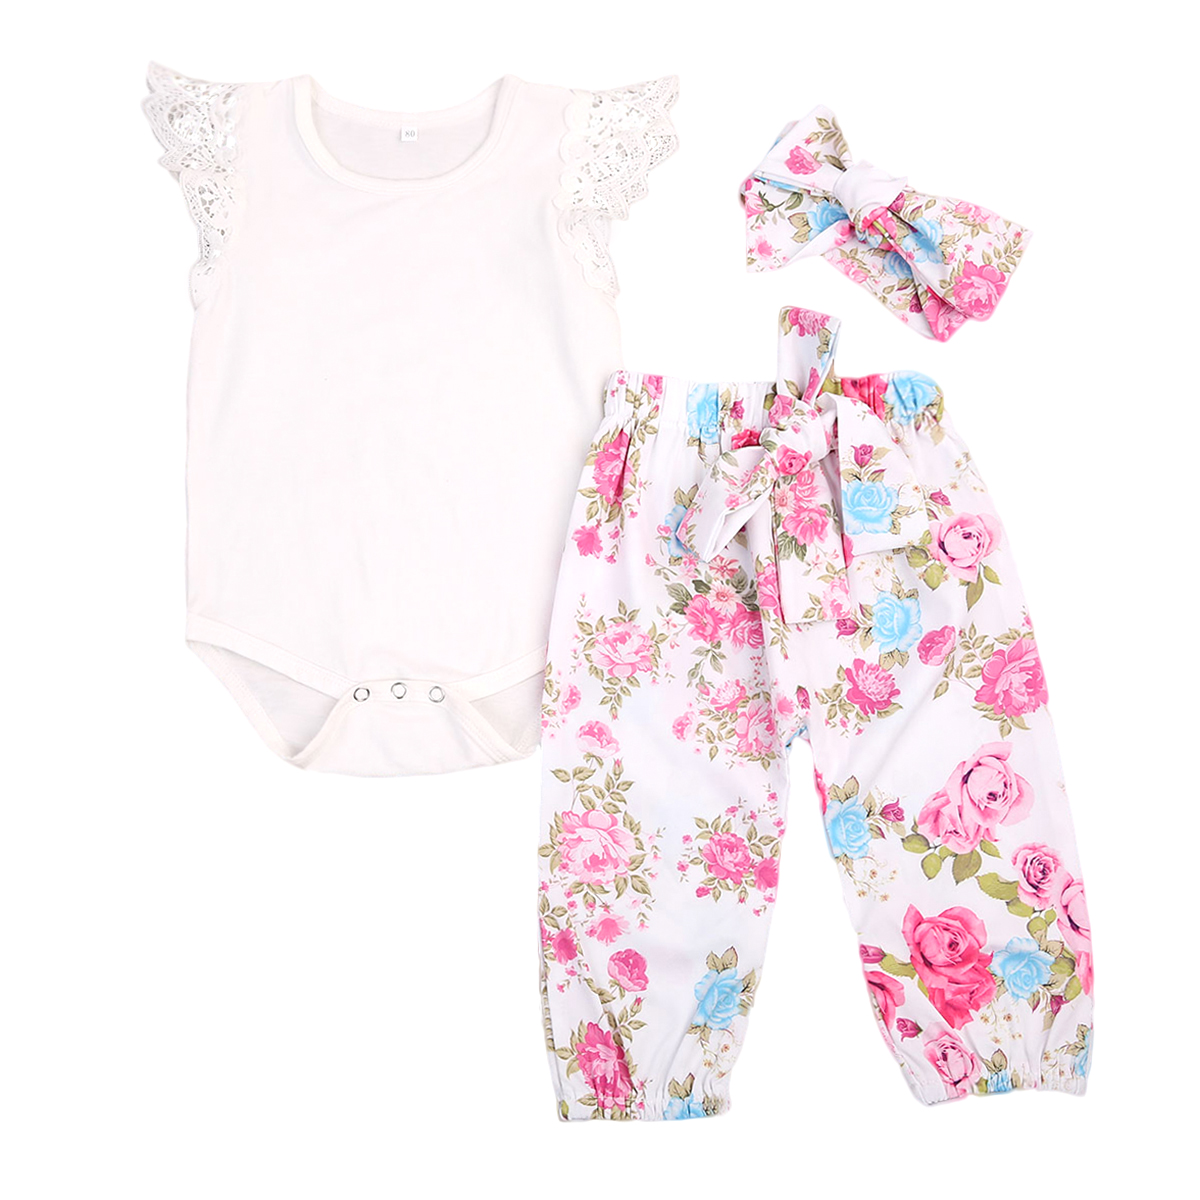 US Stock Floral Newborn Baby Girls Lace Romper Pants Headband Outfit Set Clothes Infant Toddler Girl Brief Clothing Set Playsuit 3pcs set newborn girls christmas clothes set warm hat letter print romper love arrow print pants leisure toddler baby outfit set